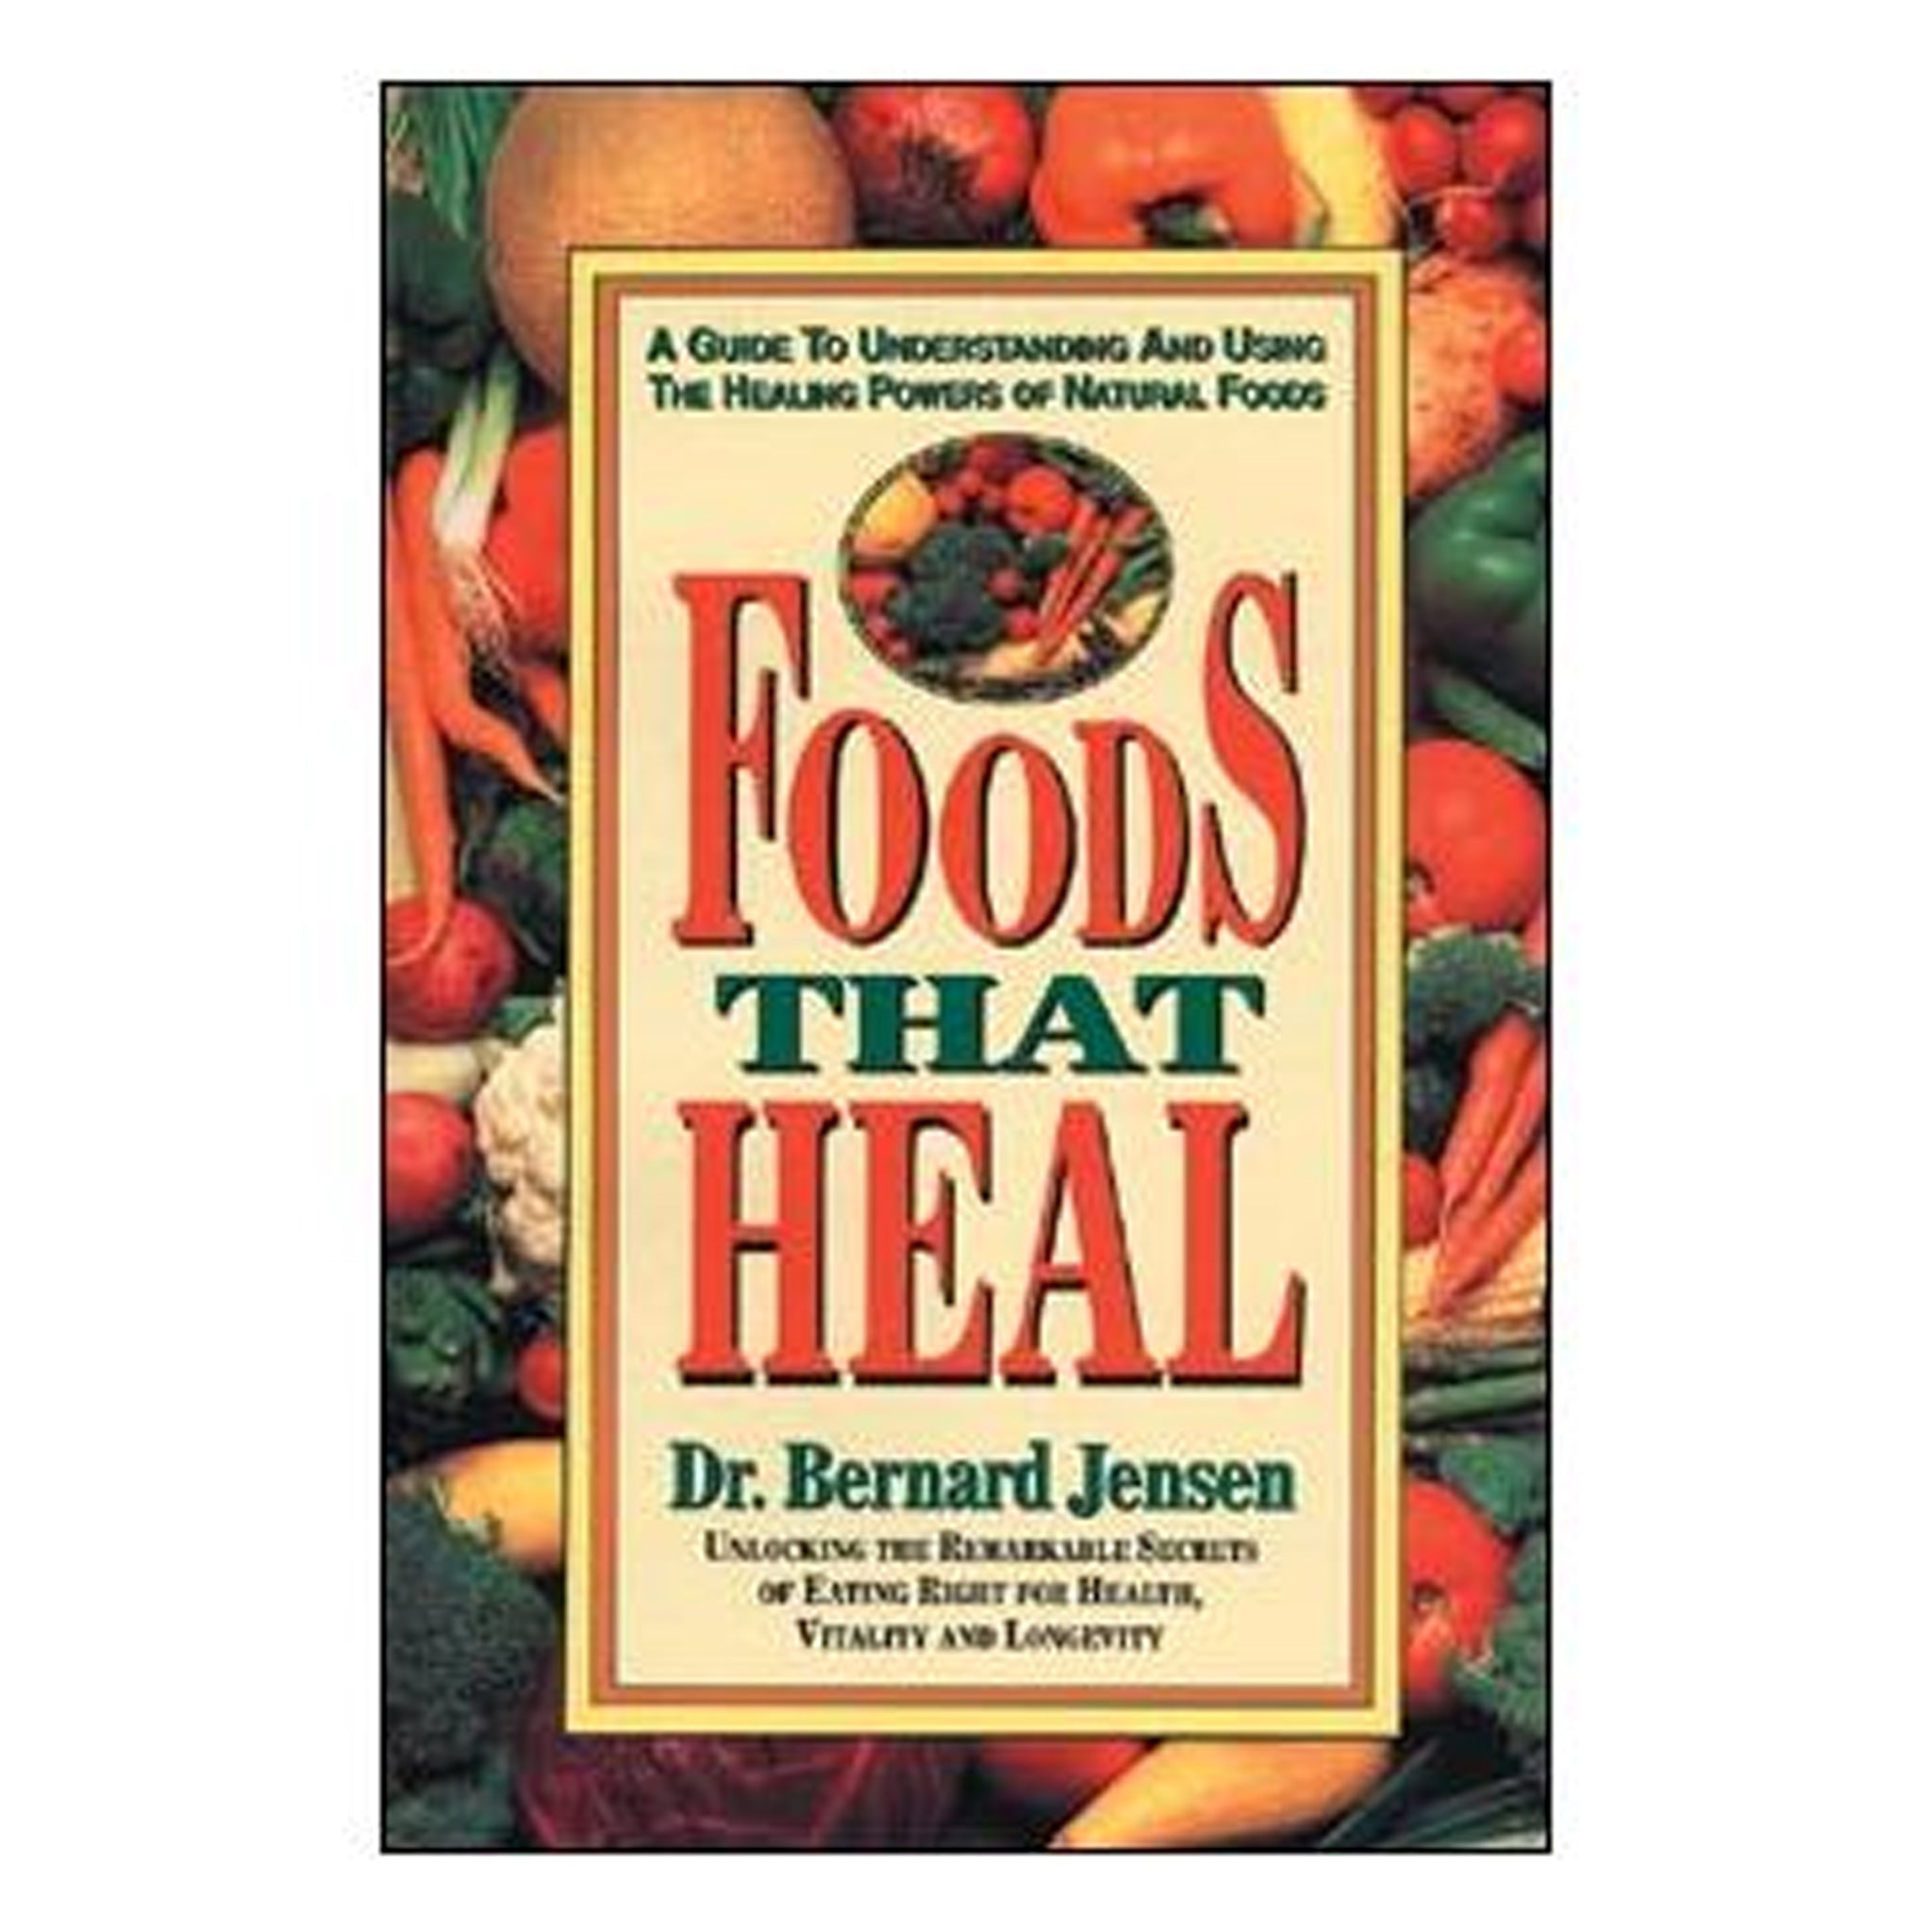 Foods That Heal by Dr Bernard Jensen, GPBBJ06 - Tribest